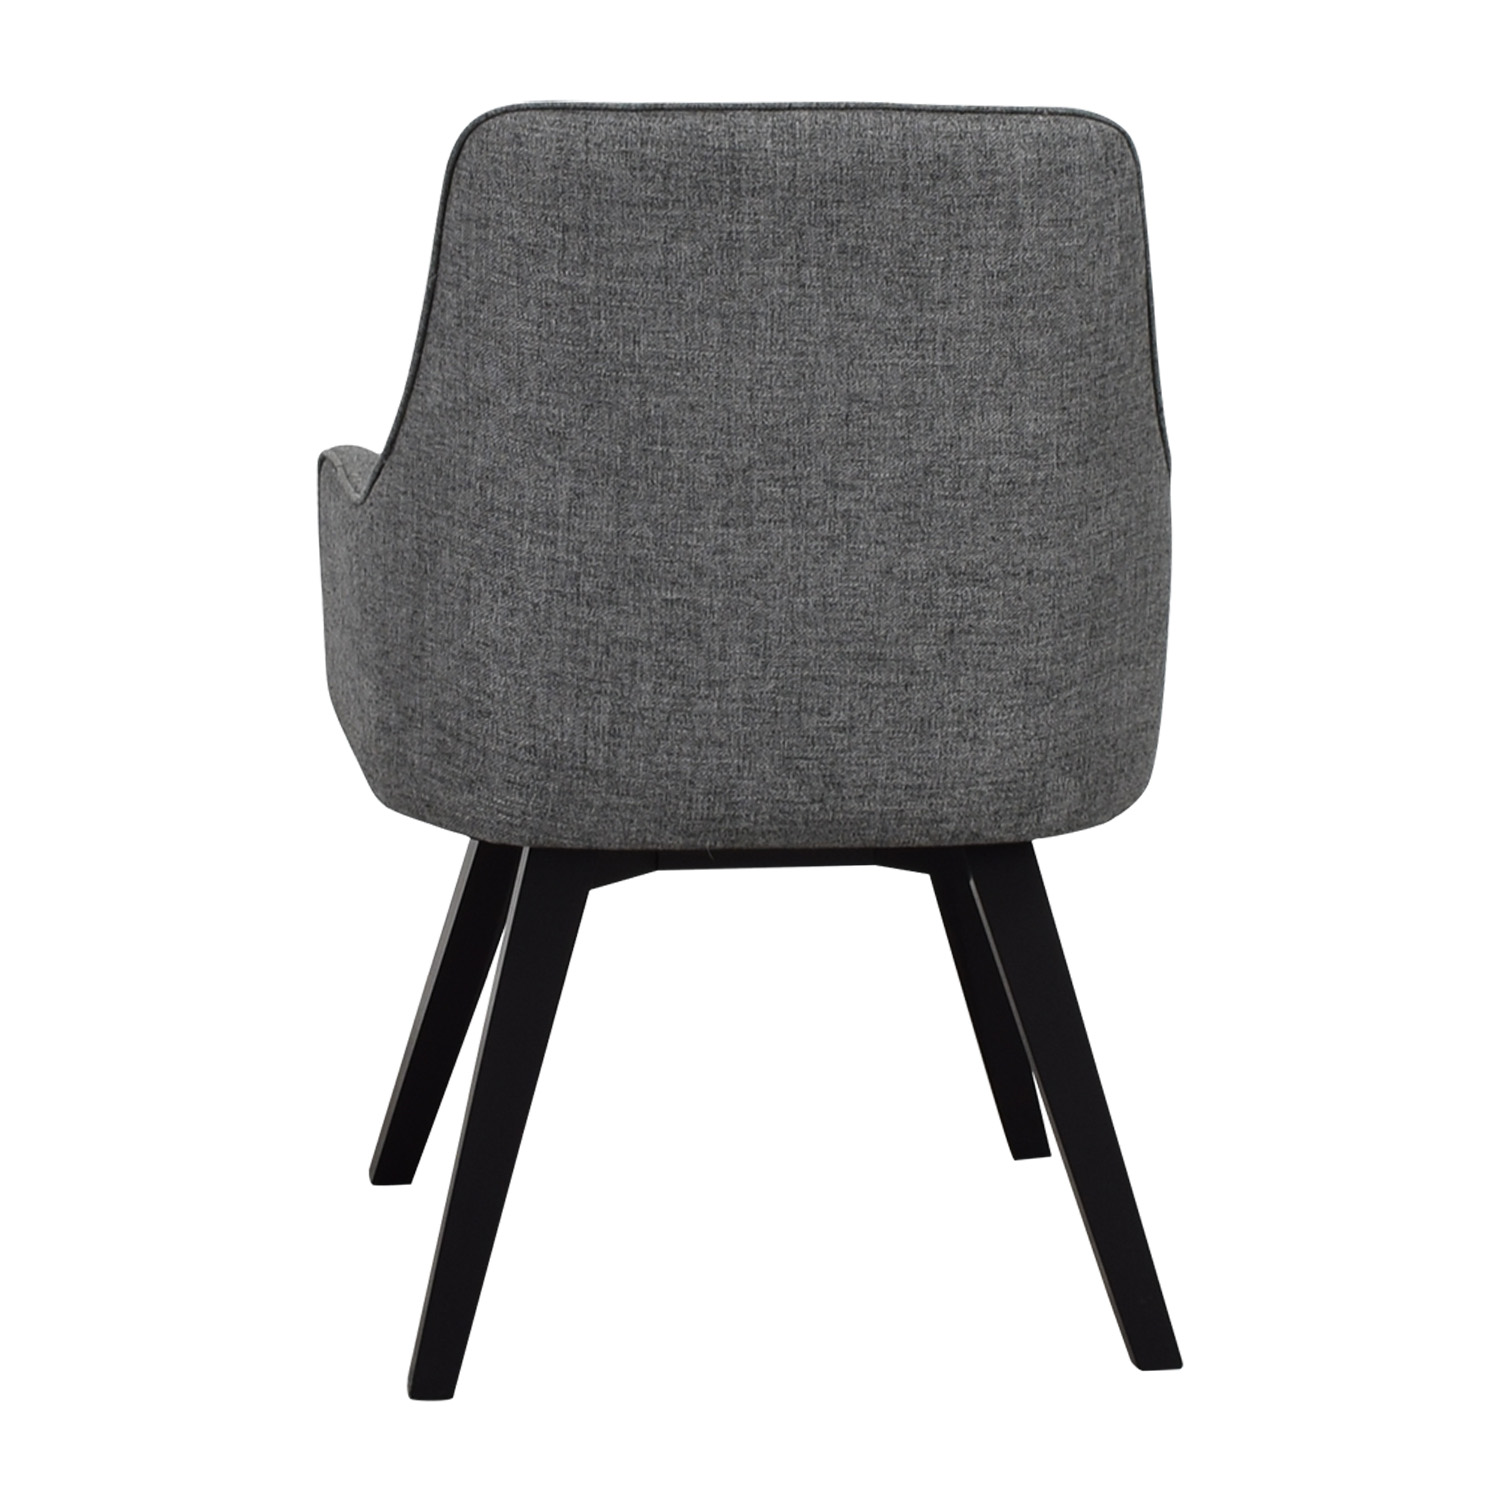 ... Crate U0026 Barrel Crate U0026 Barrel Harvey Grey Chair ...